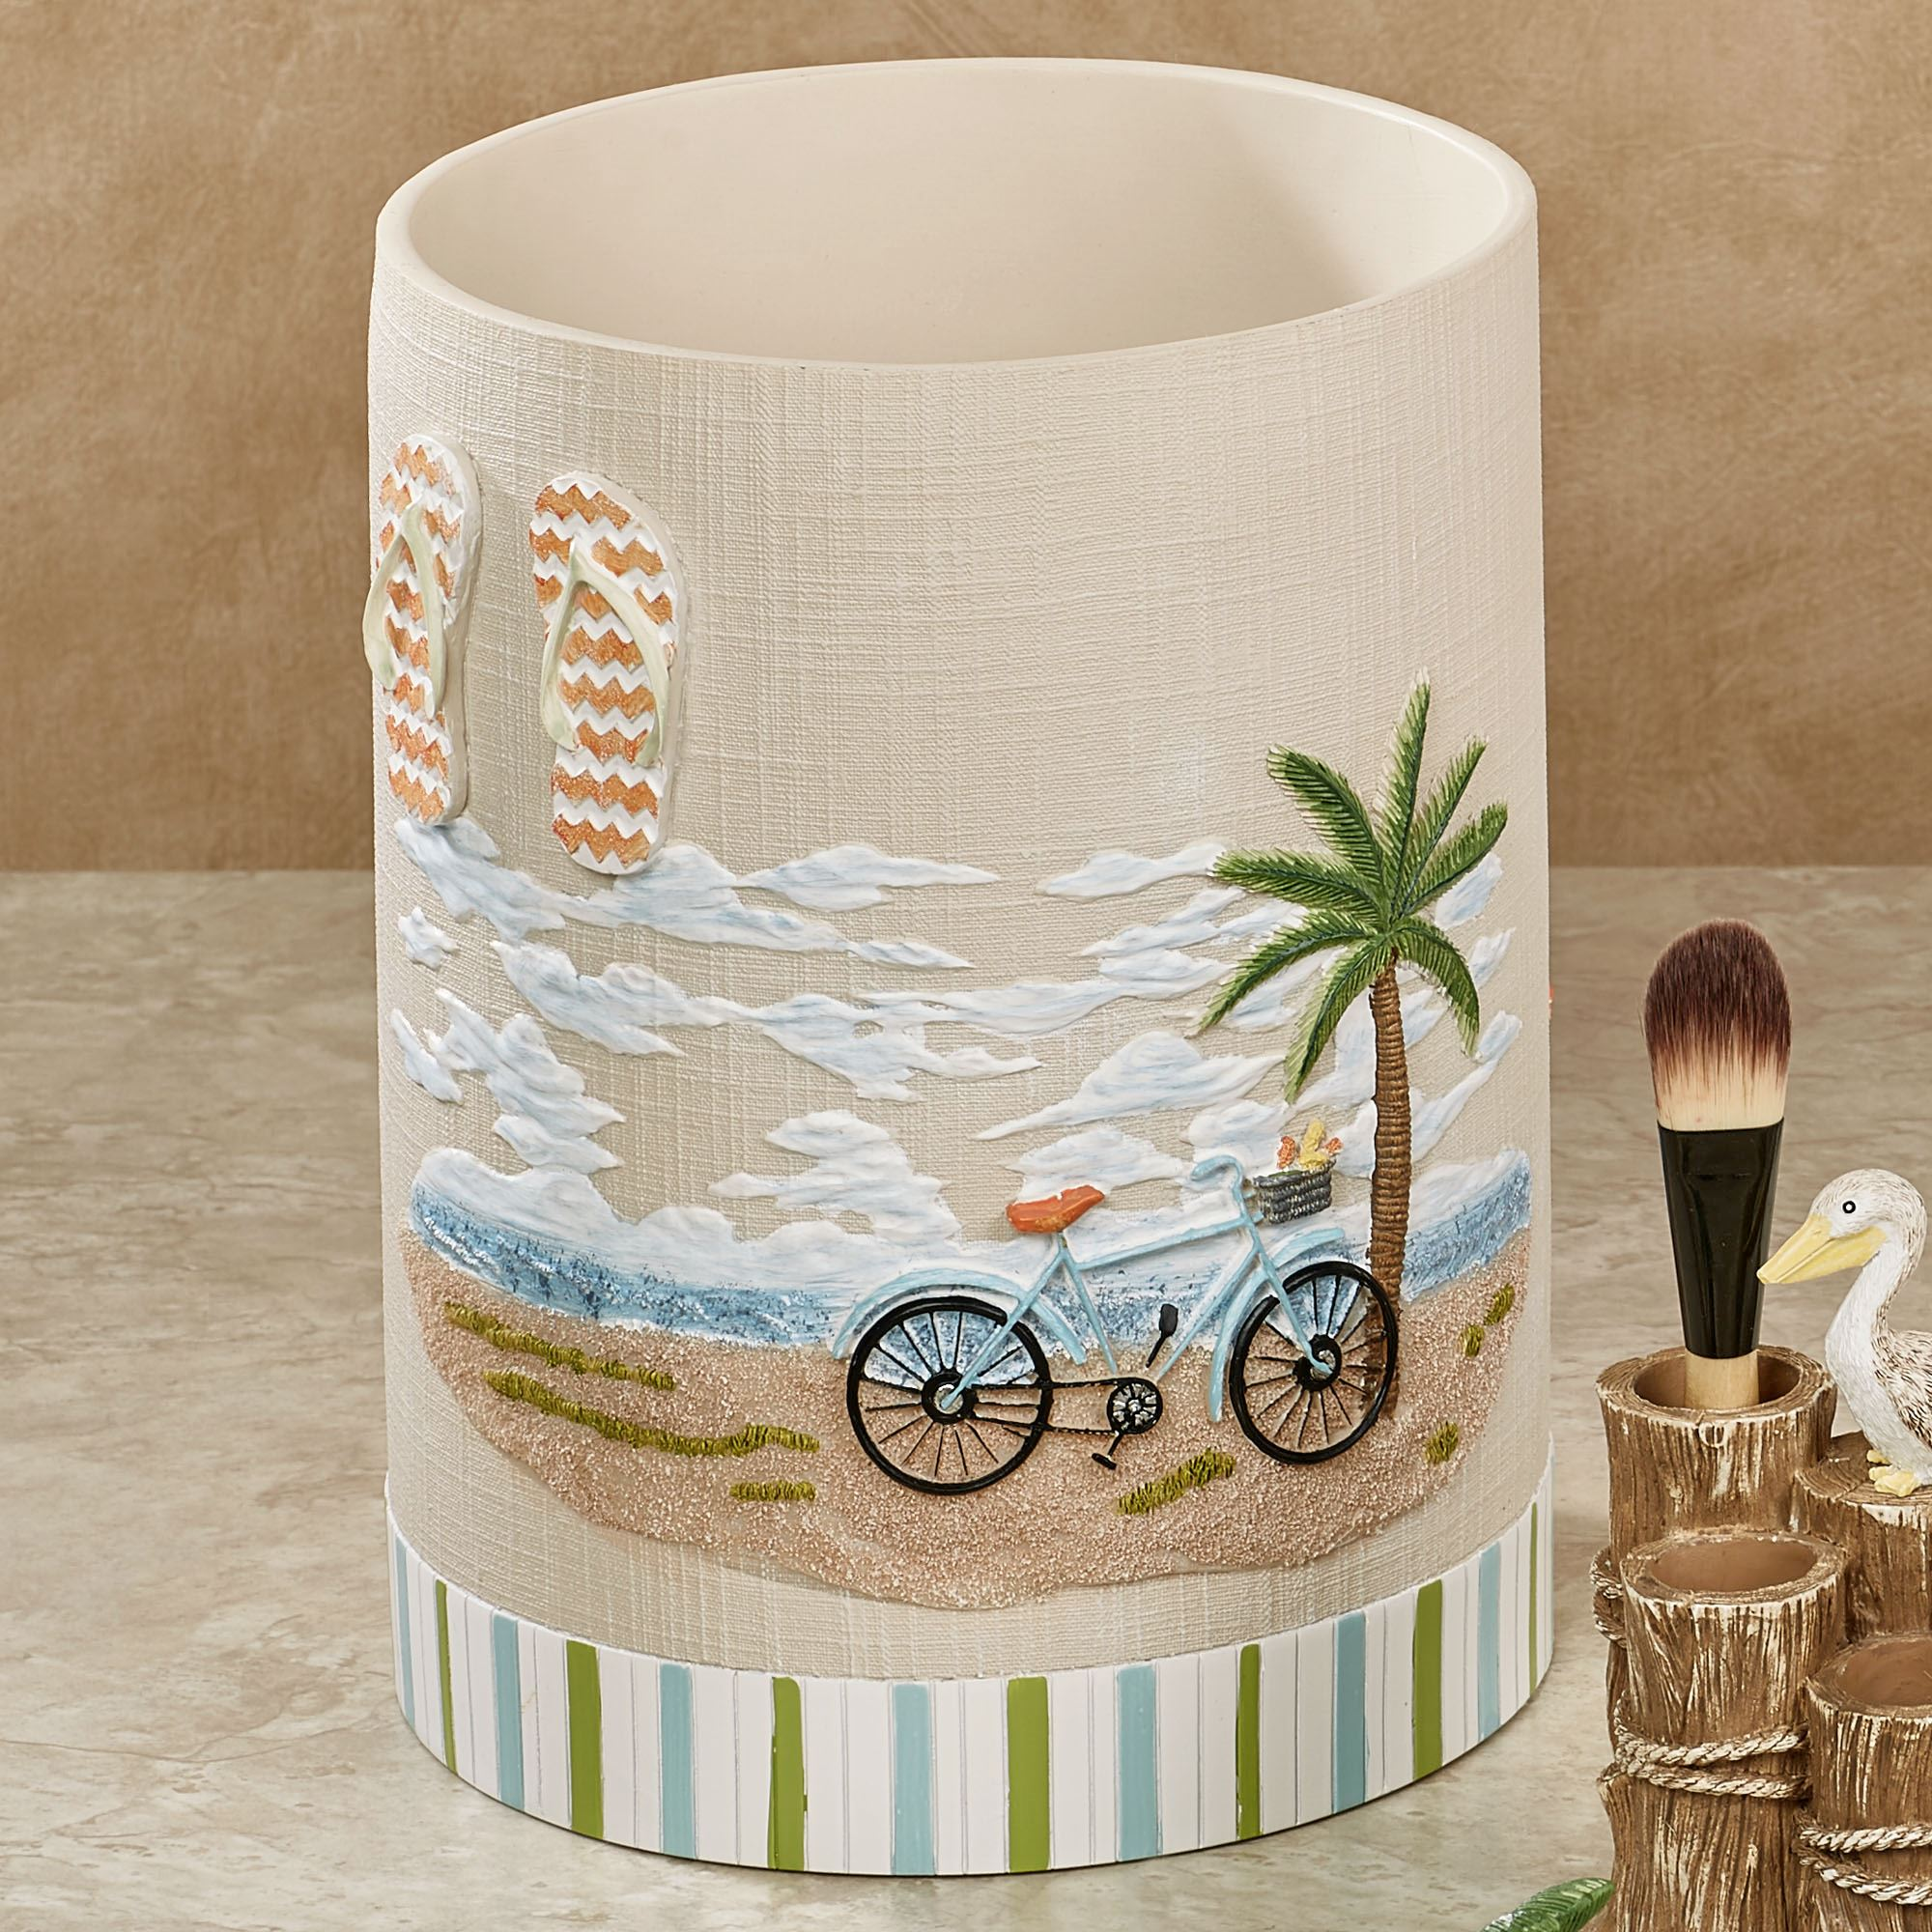 Shorething retro beach themed bath accessories - Cool wastebaskets ...